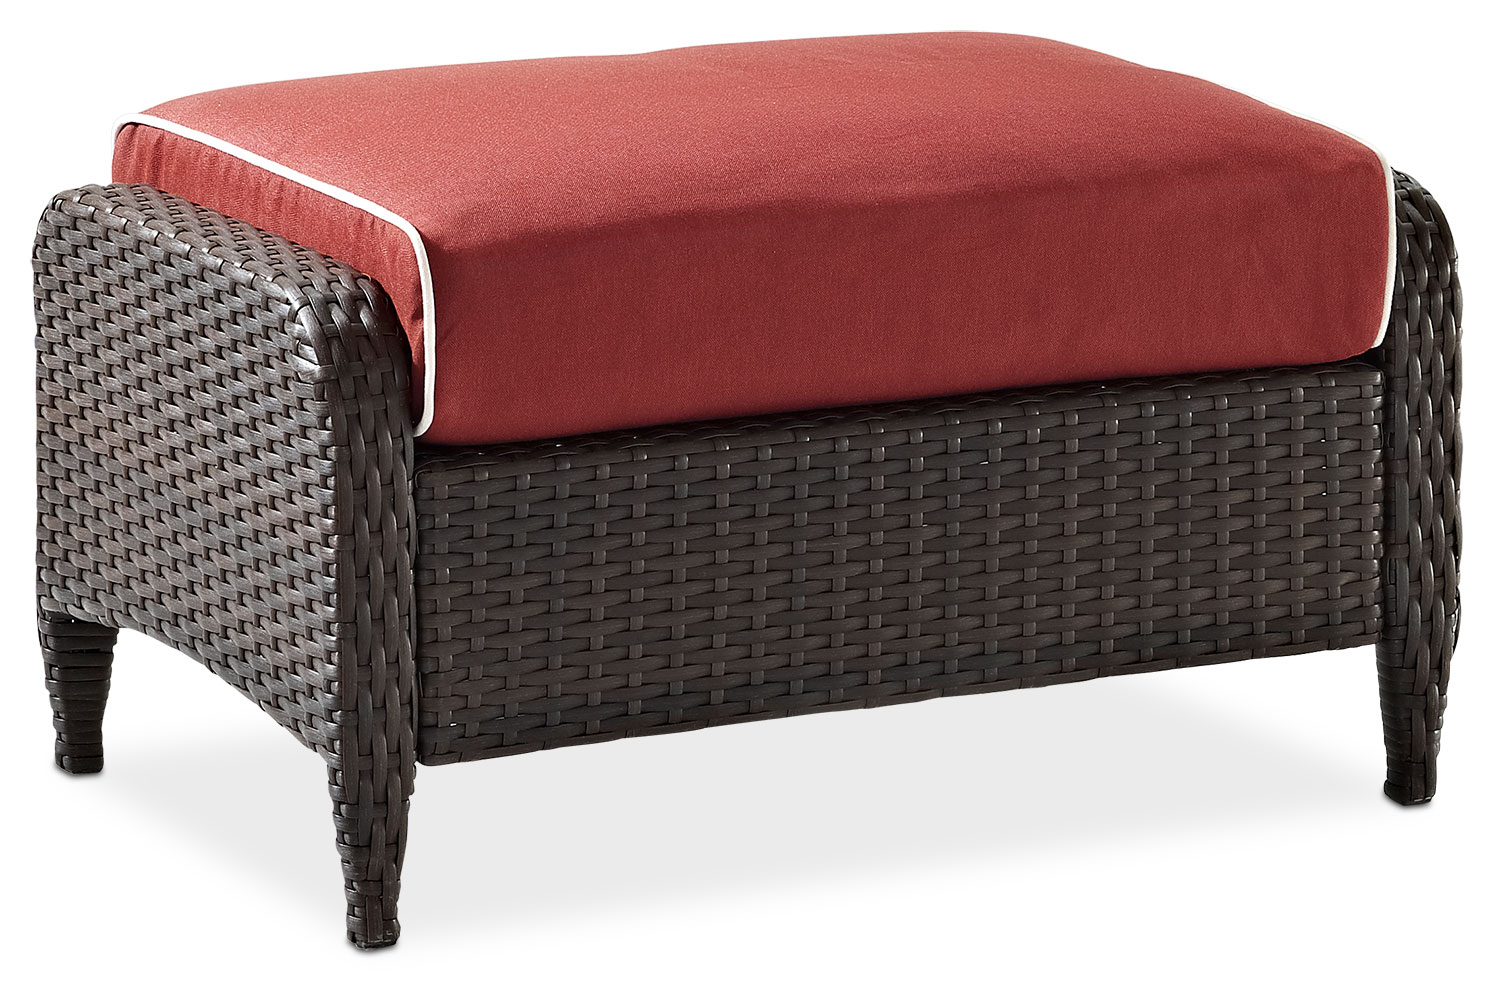 Outdoor Furniture - Corona Outdoor Ottoman